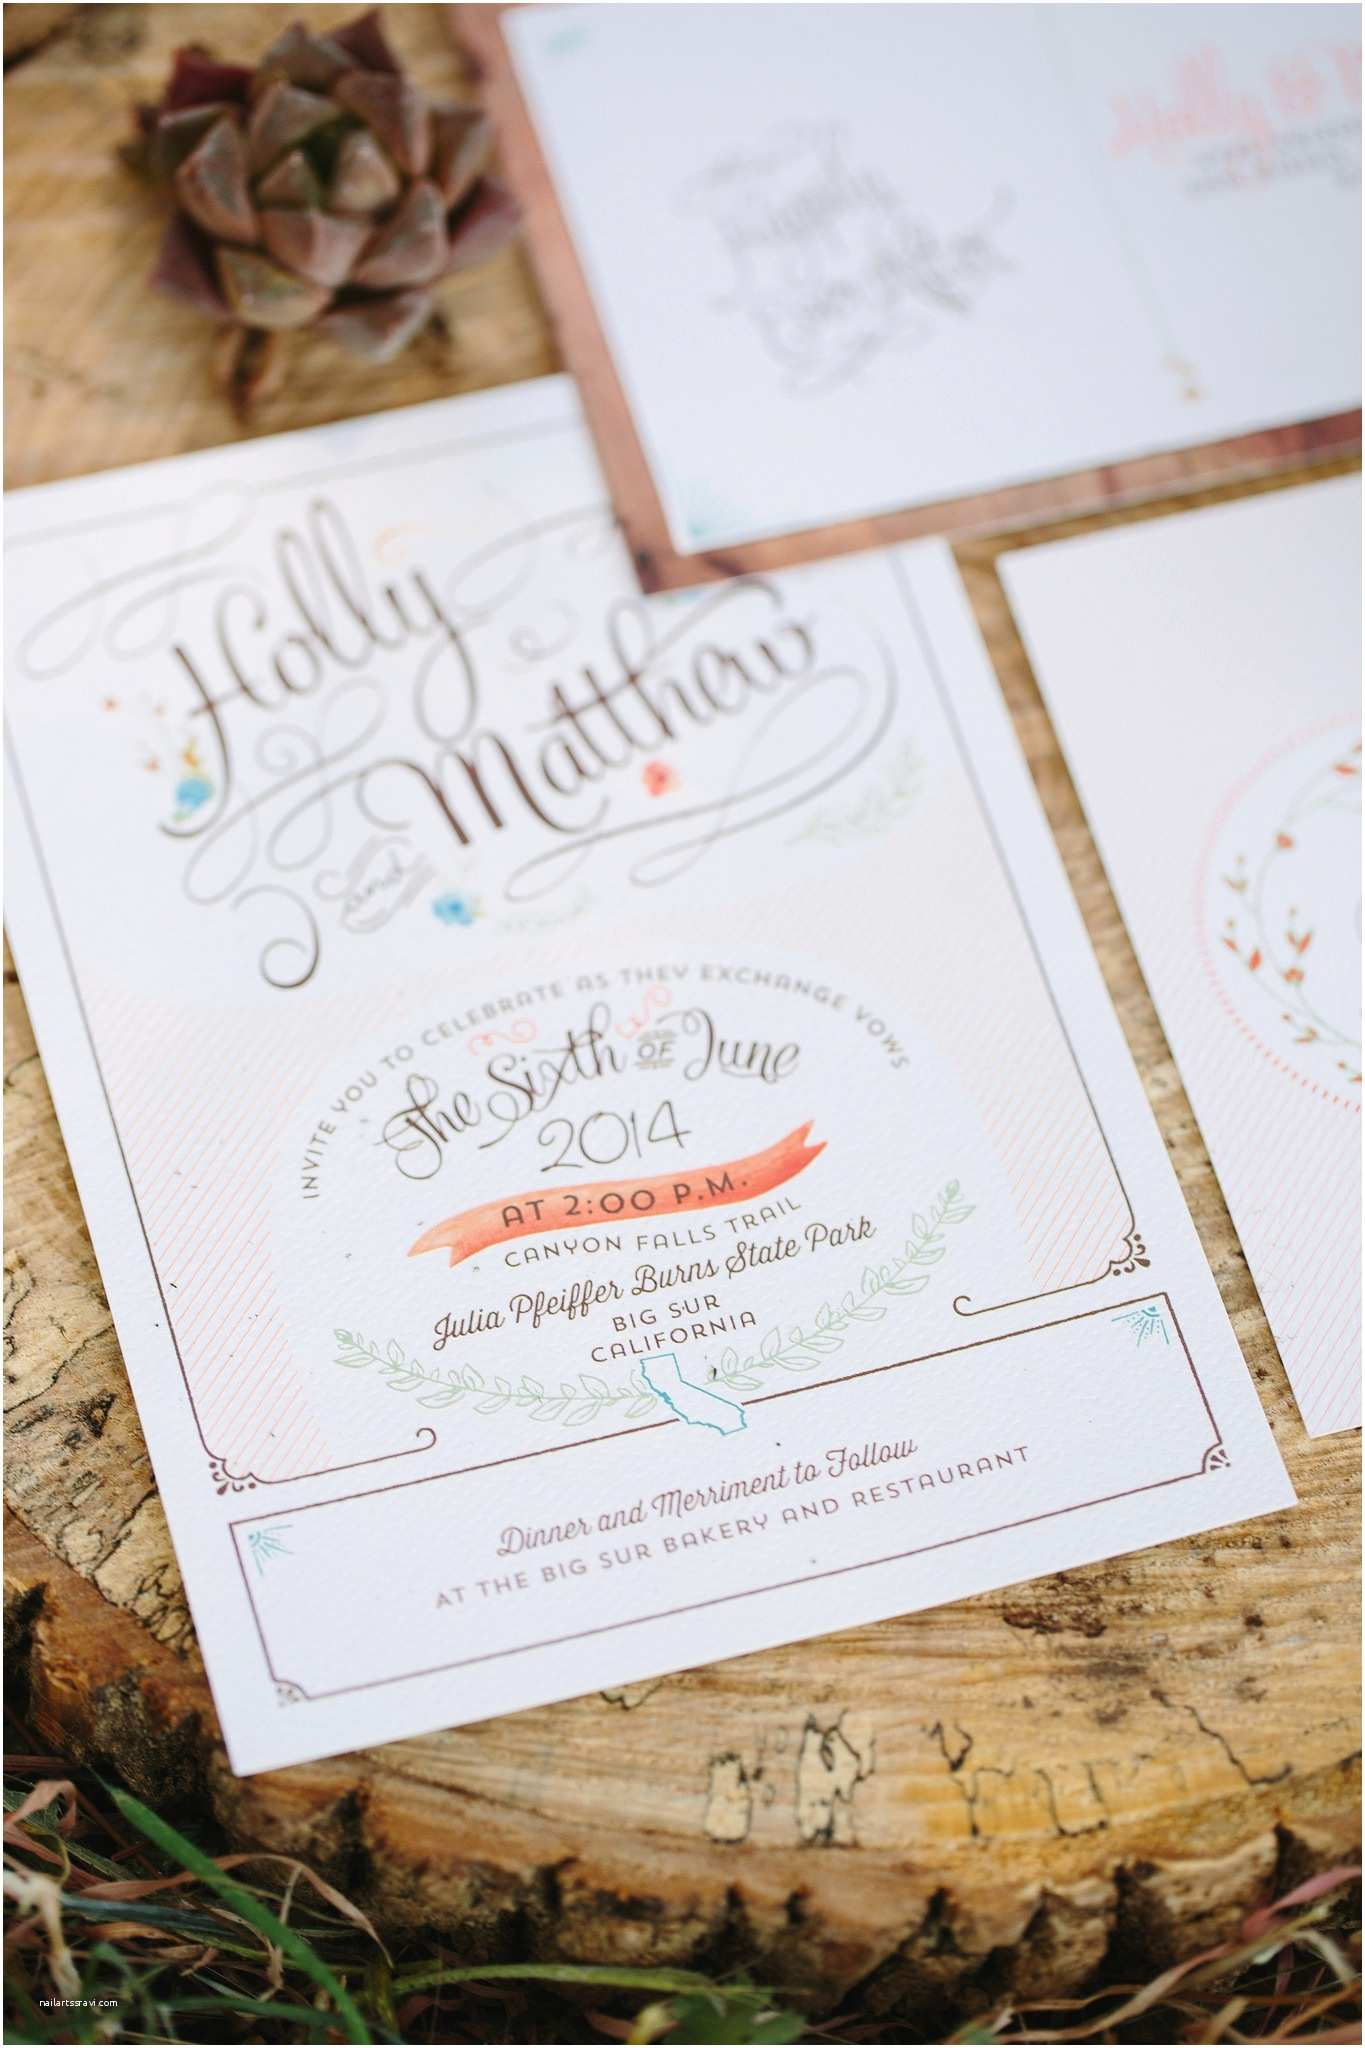 What To Put On Wedding S 5 Tips For Getting People To Rsvp To Your Wedding